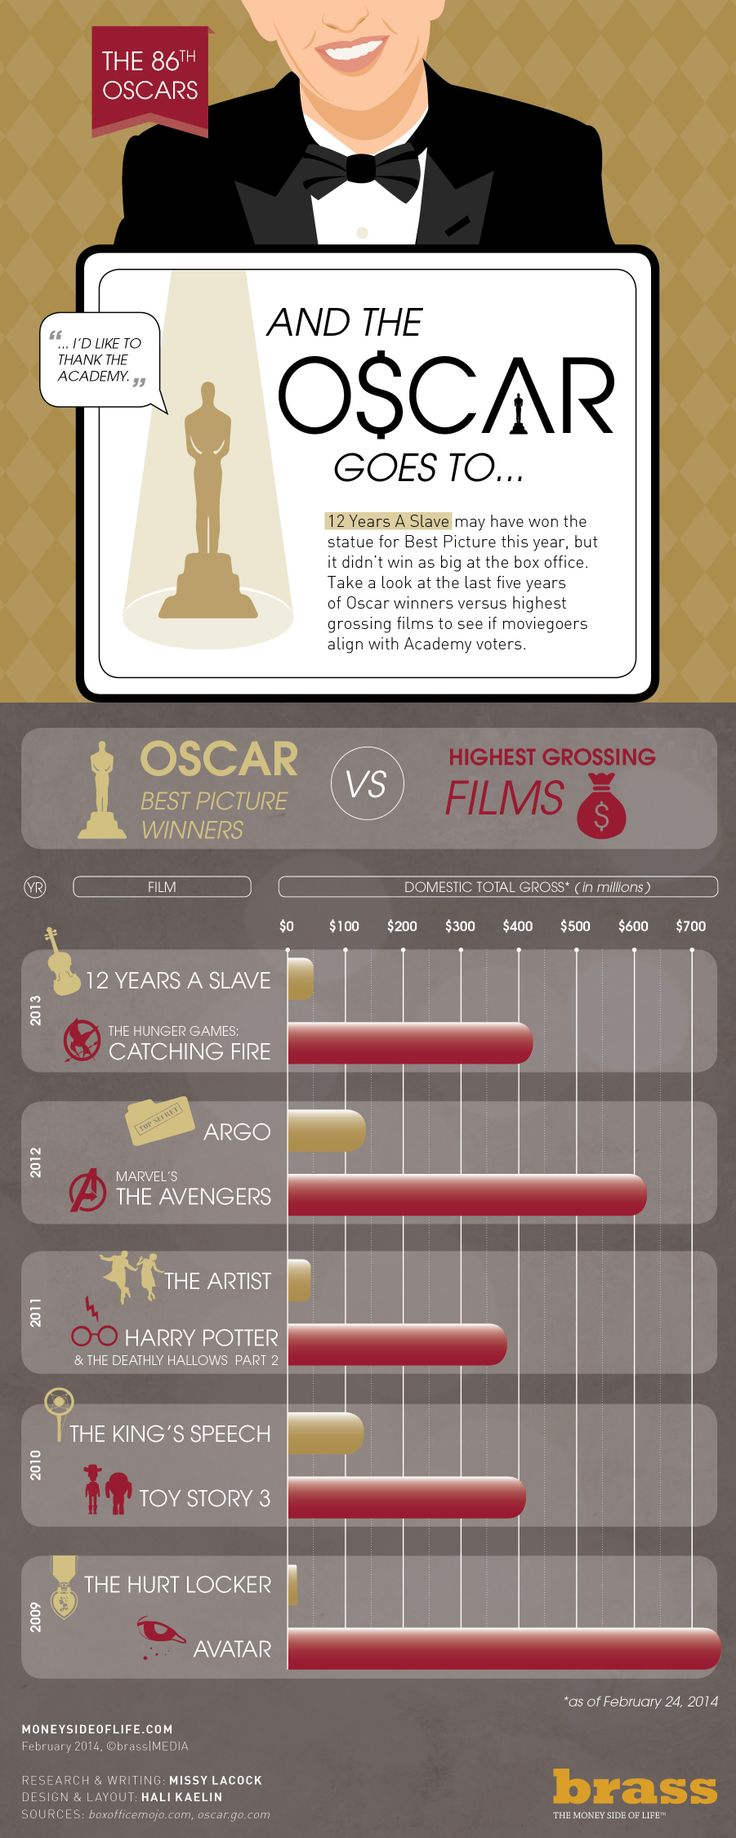 Oscar Best Picture Winners Vs. Highest Grossing Films   #infographic #Oscar  #Films #Entertainment